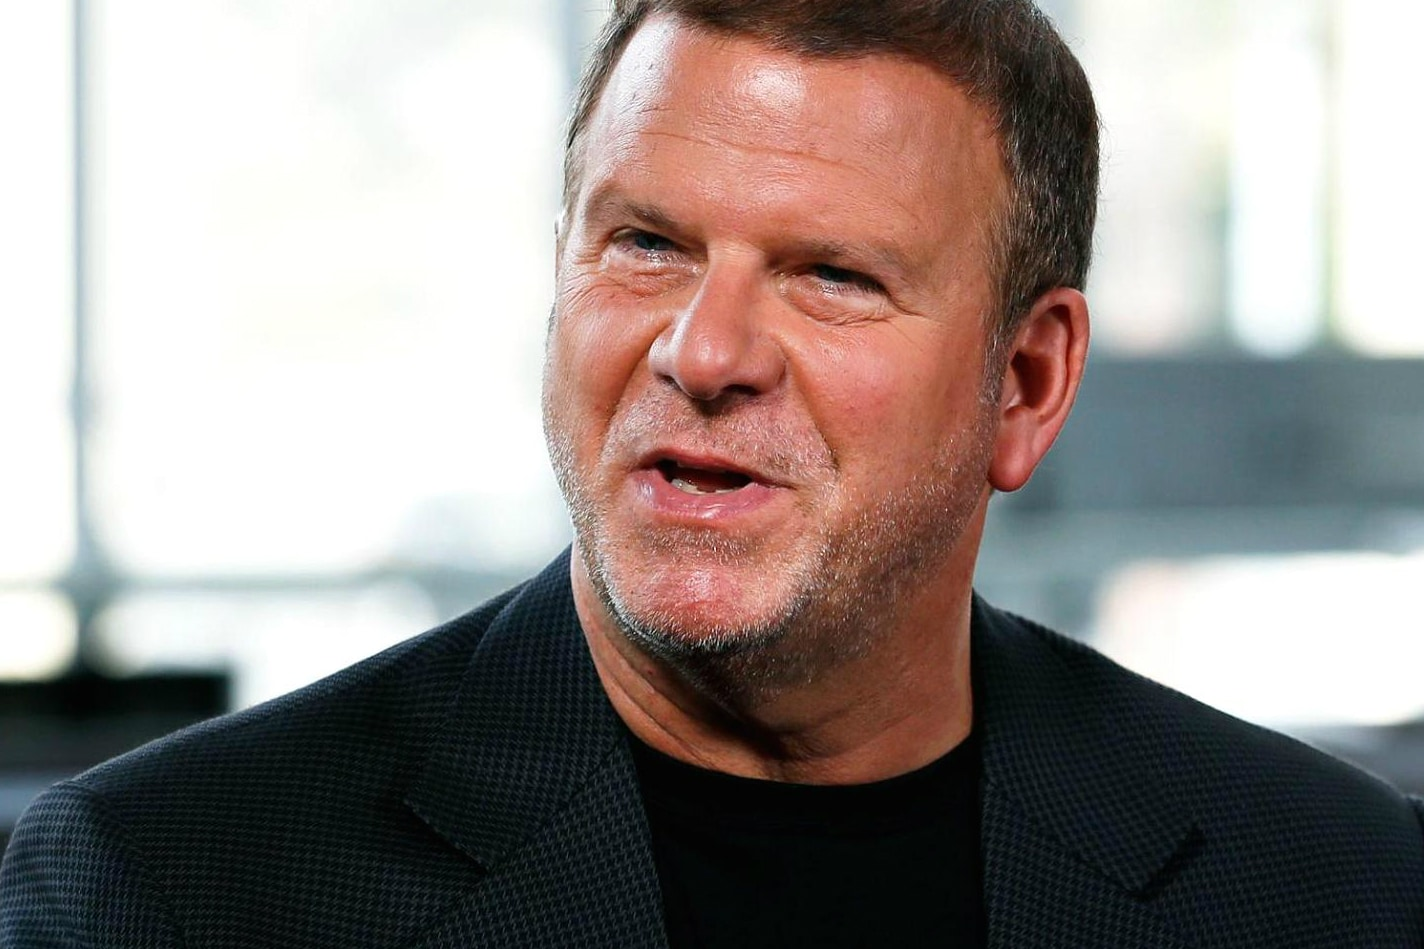 Houston Rockets Sold To Landry's Tilman Fertitta for Record $2.2 Billion